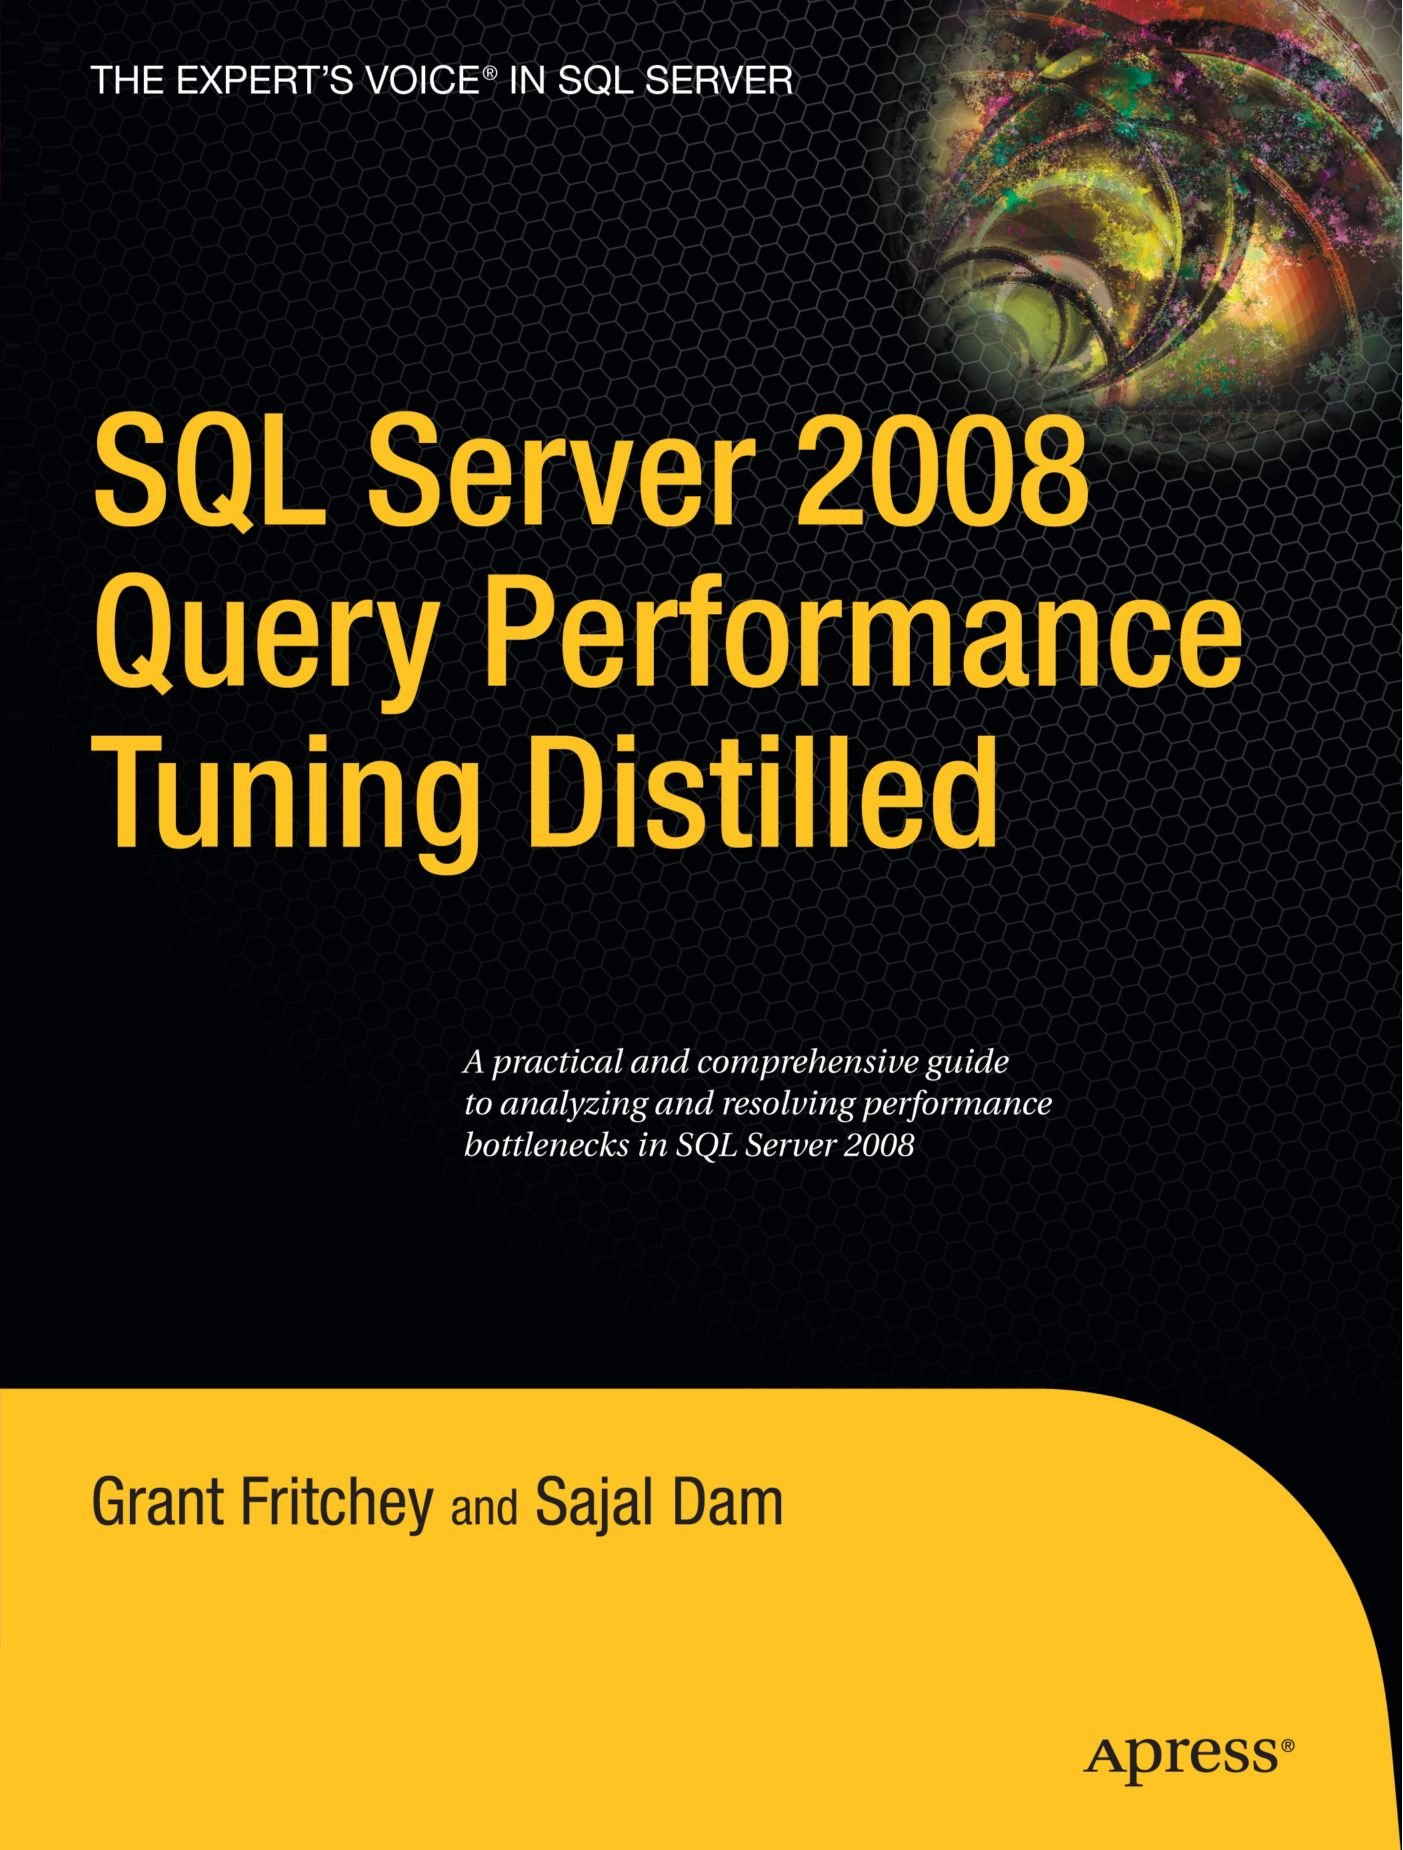 Server Performance Tuning Distilled Experts product image